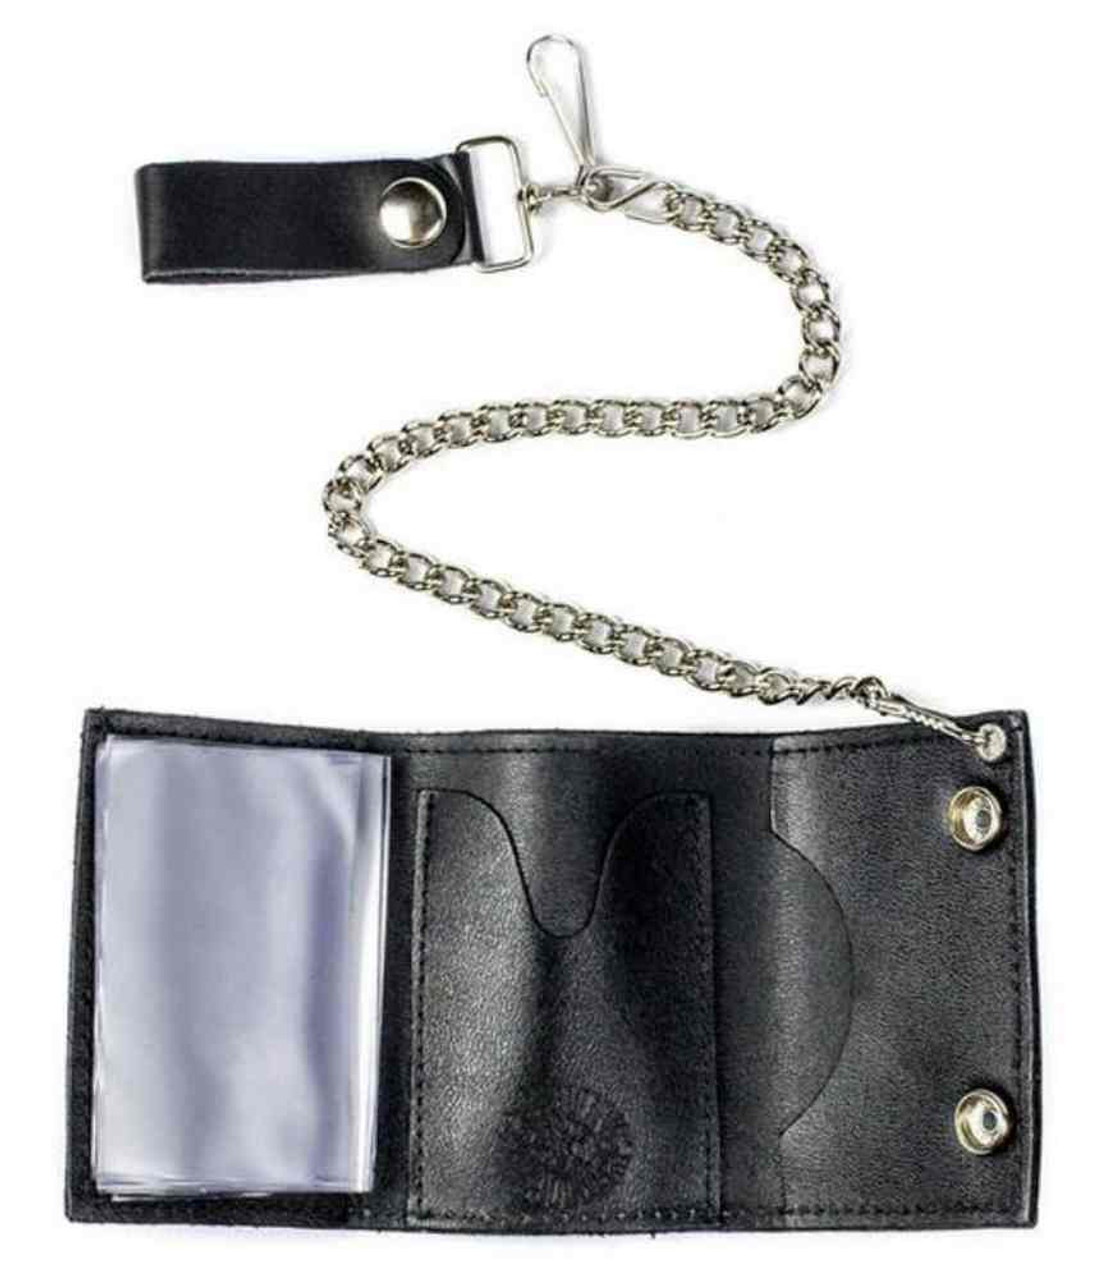 New Flames Leather Trifold Chain Wallet Made in the USA